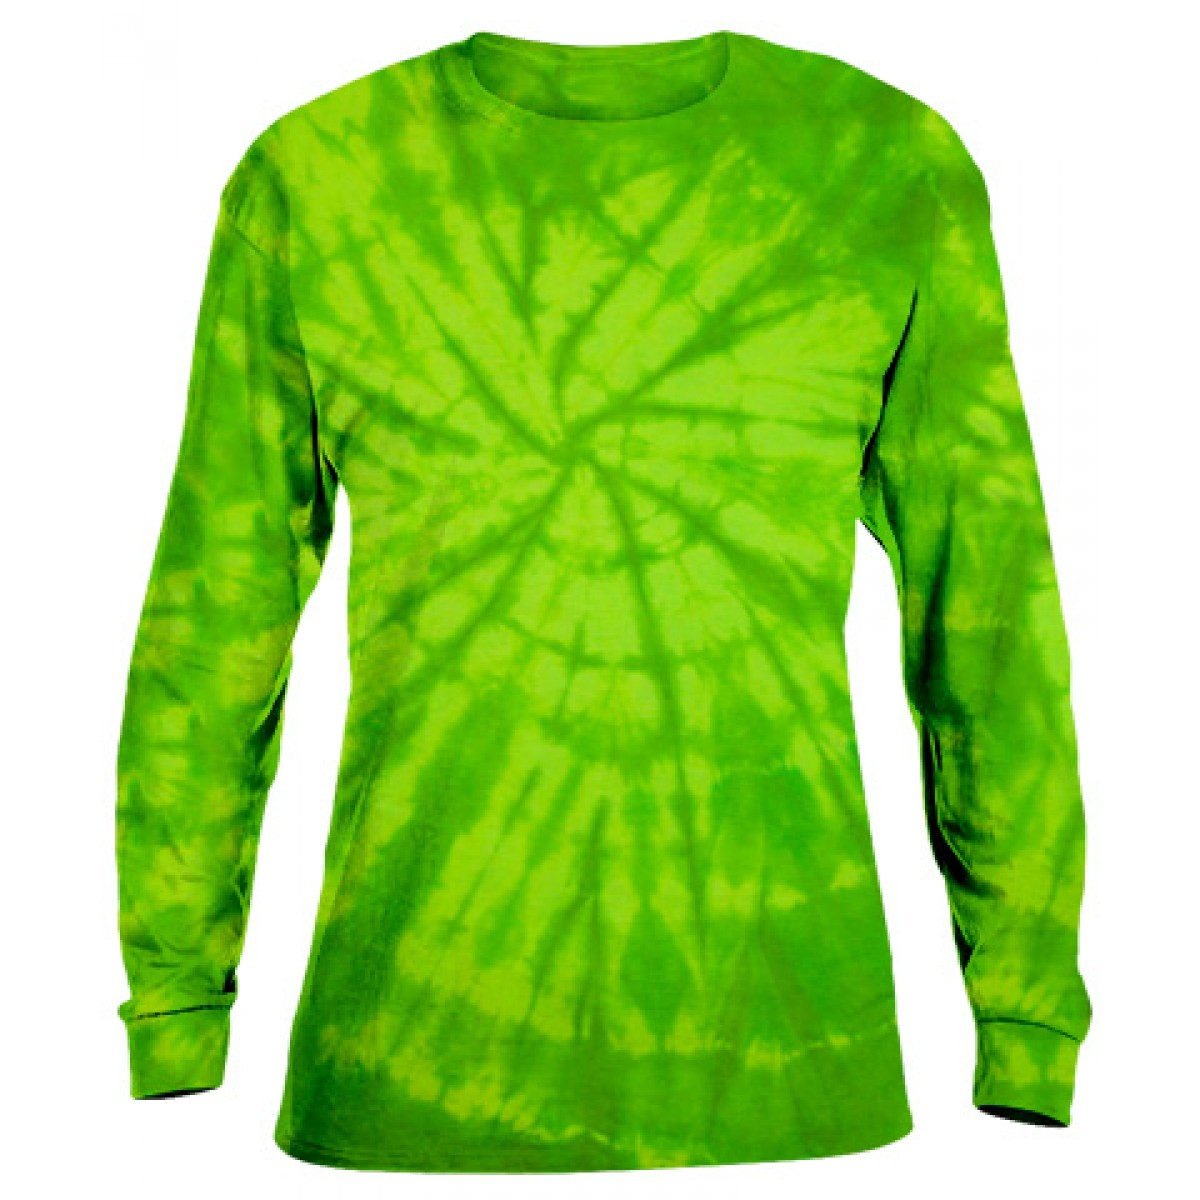 Tie-Dye Long Sleeve Shirt -Lime Green-M